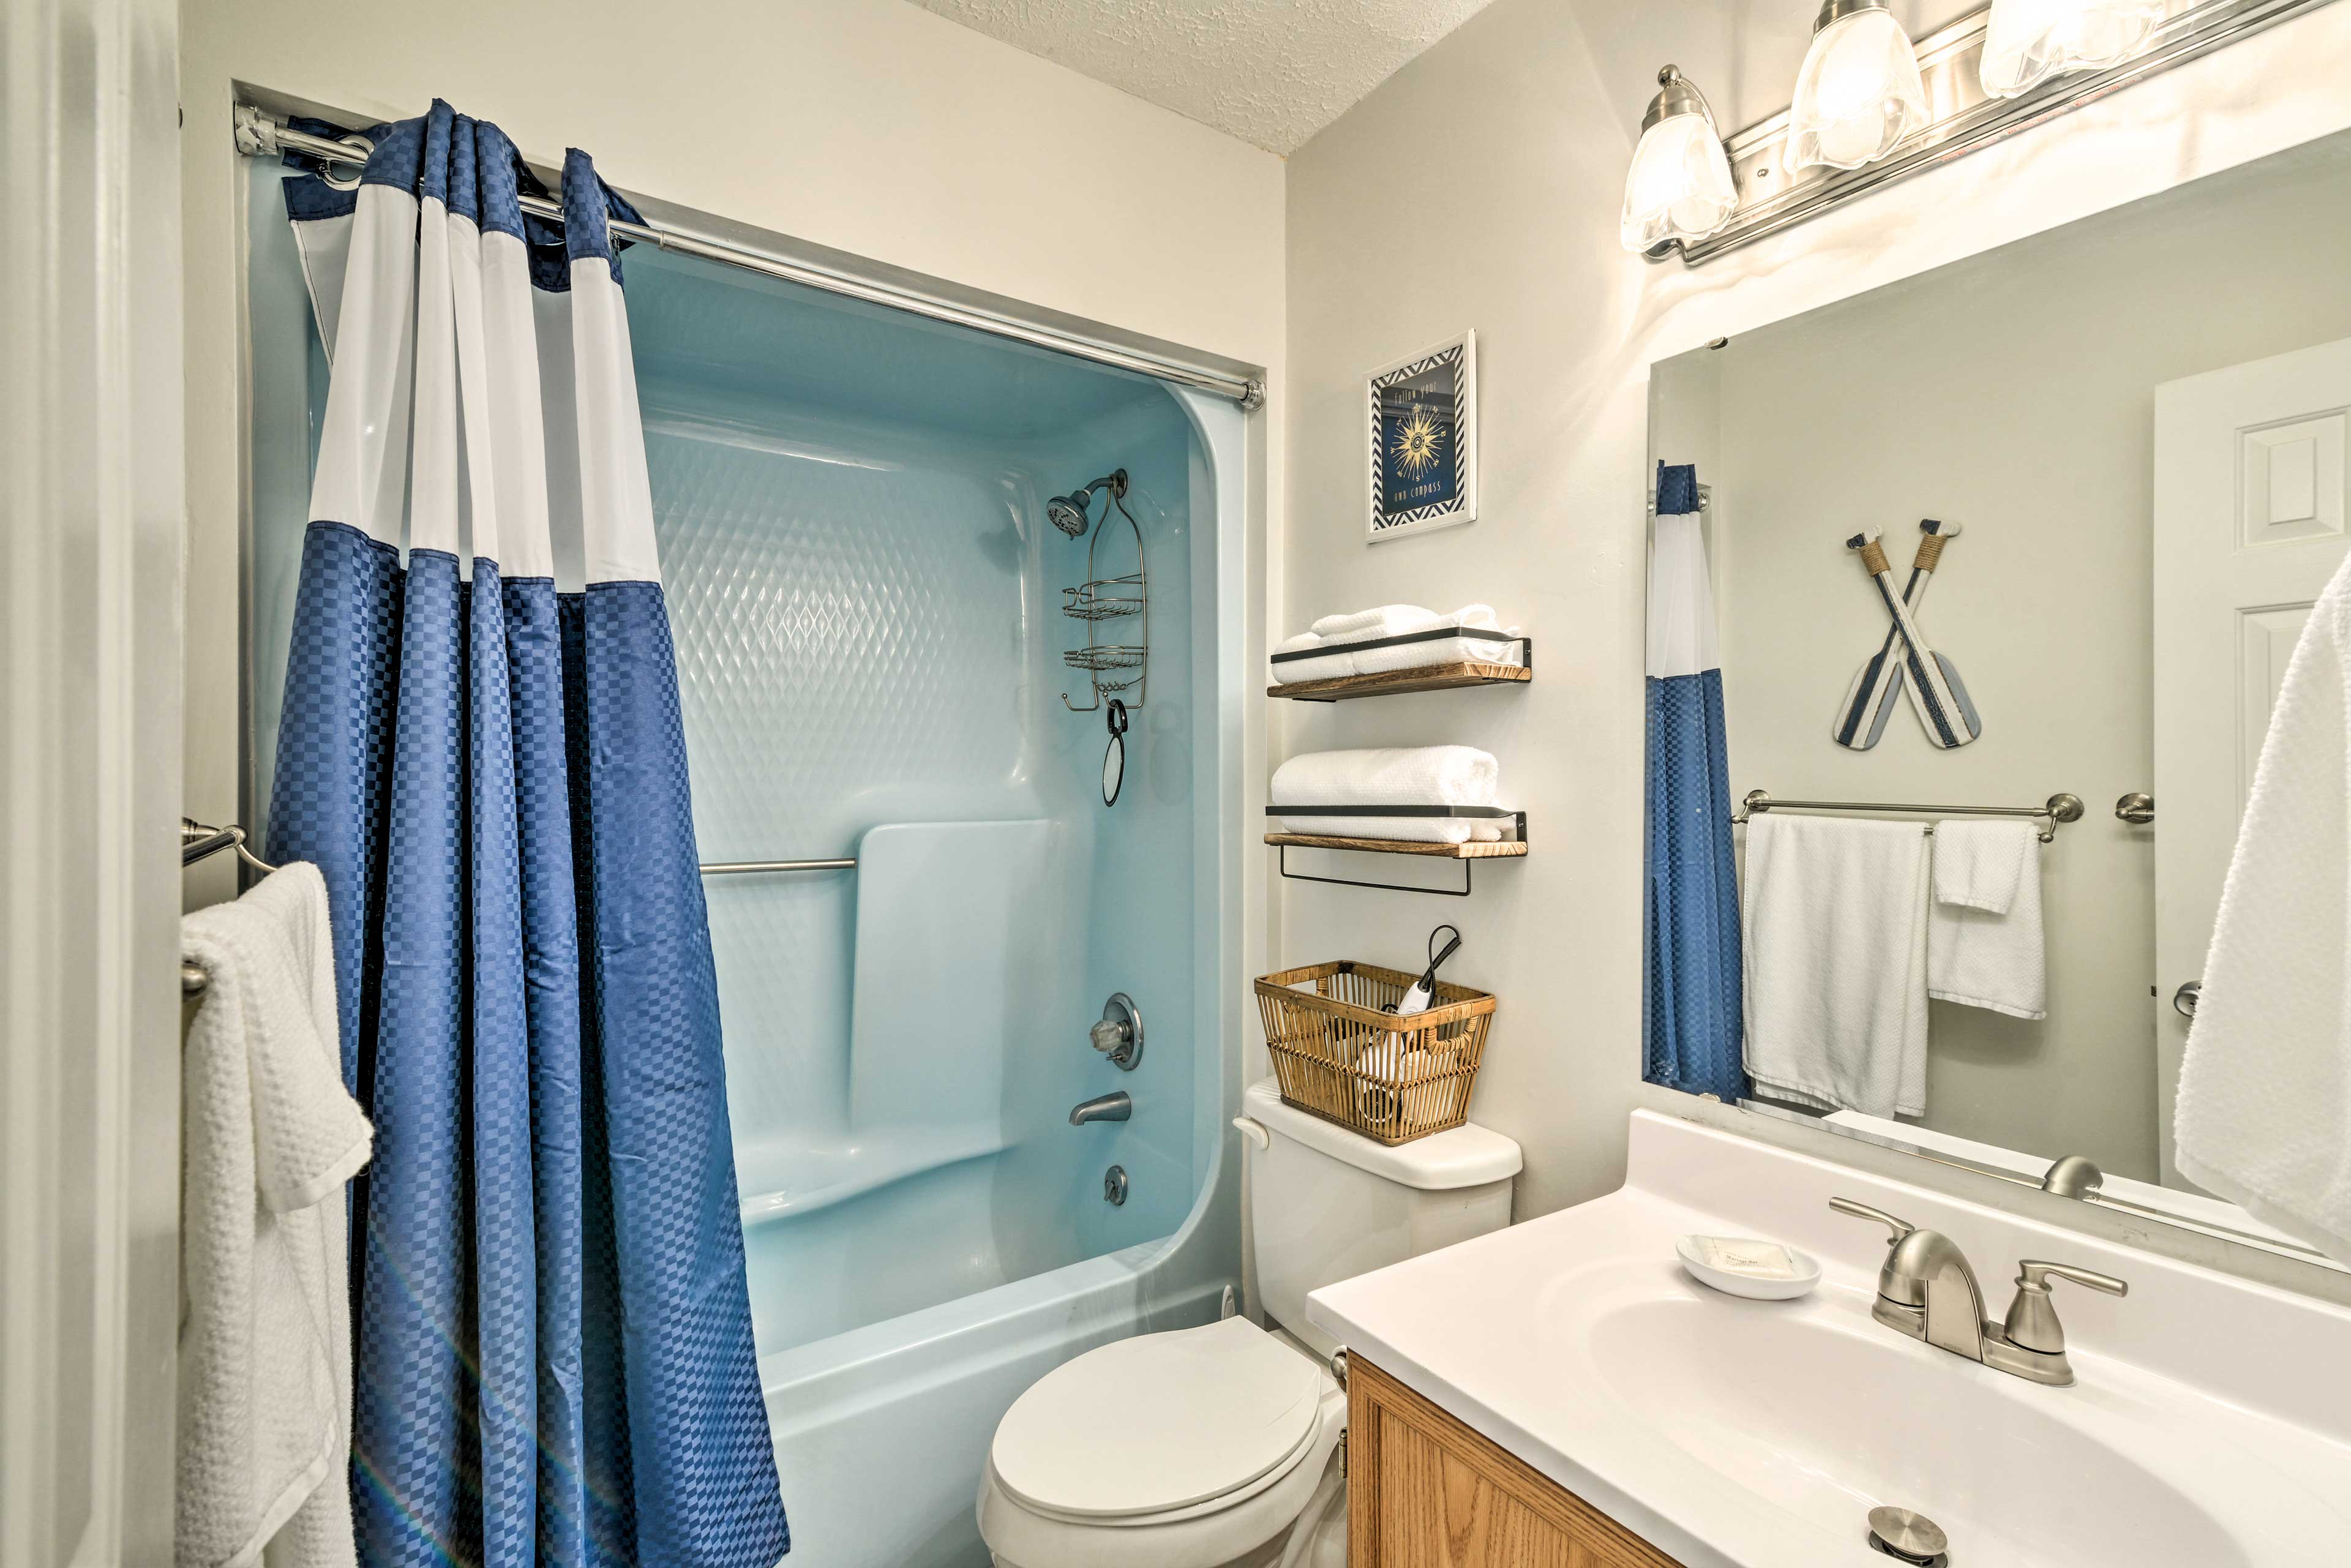 Rinse the saltwater out of your hair in the shower/tub combo of the first bath.